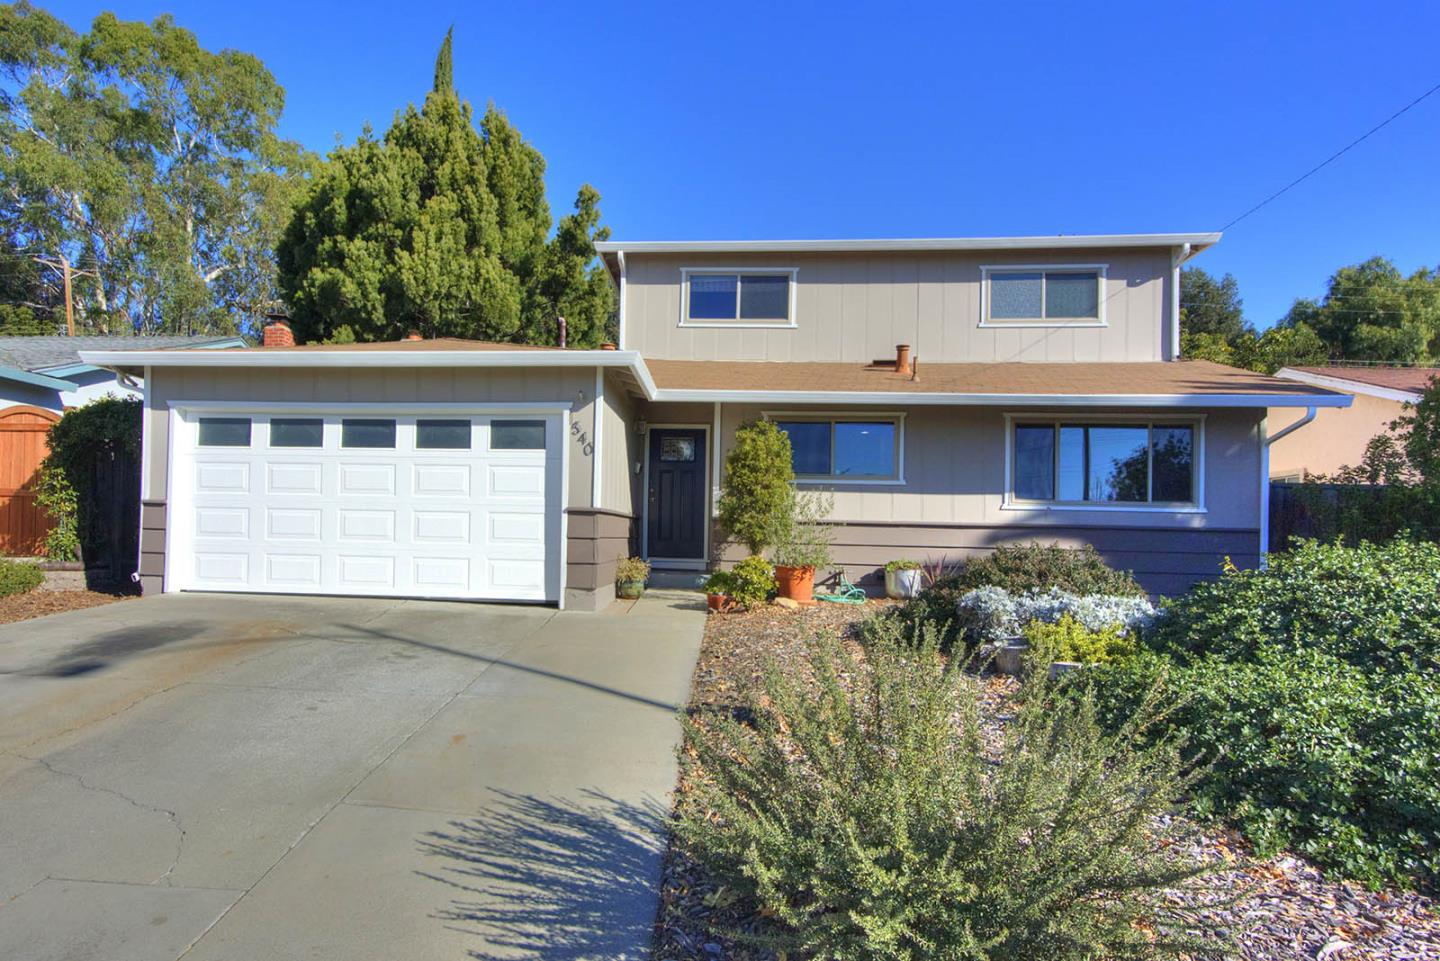 Detail Gallery Image 1 of 1 For 1540 Diel Dr, Milpitas, CA 95035 - 5 Beds | 2 Baths